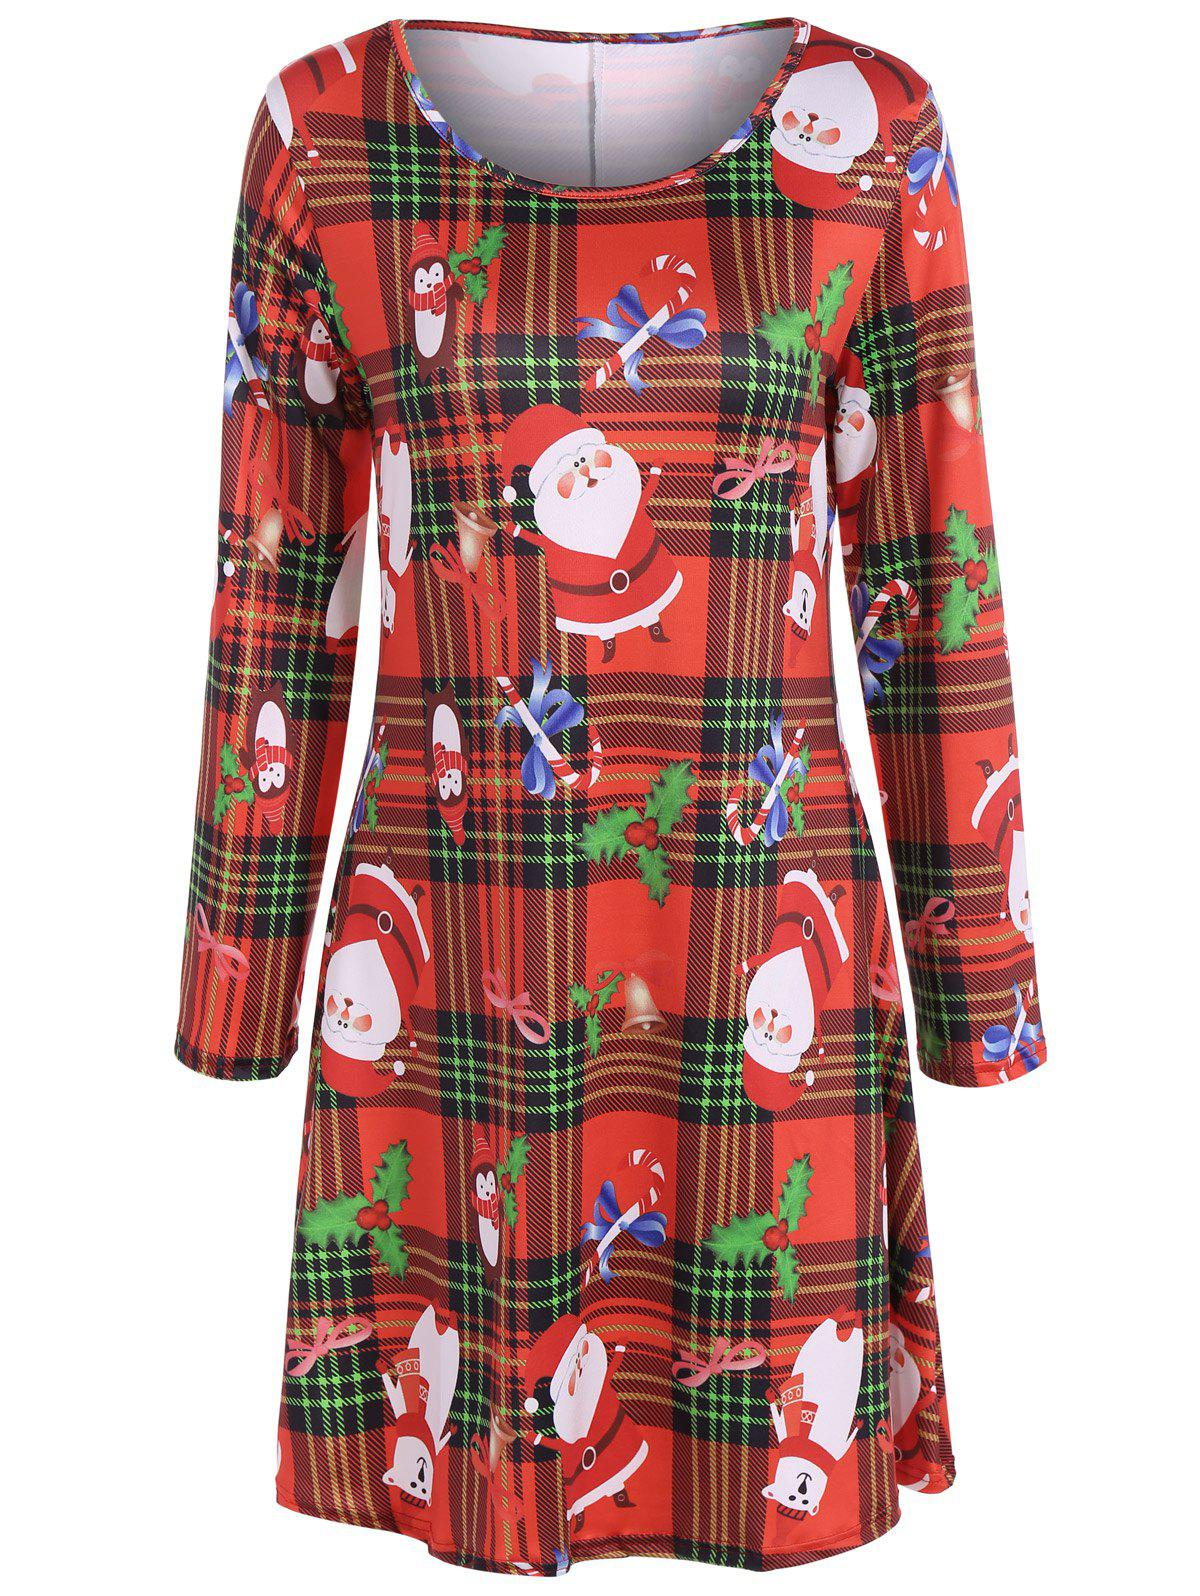 Christmas Santa Print Plaid DressWOMEN<br><br>Size: XL; Color: RED; Style: Casual; Material: Polyester; Silhouette: A-Line; Dresses Length: Mini; Neckline: Scoop Neck; Sleeve Length: Long Sleeves; Pattern Type: Character; With Belt: No; Season: Fall,Spring; Weight: 0.3500kg; Package Contents: 1 x Dress;